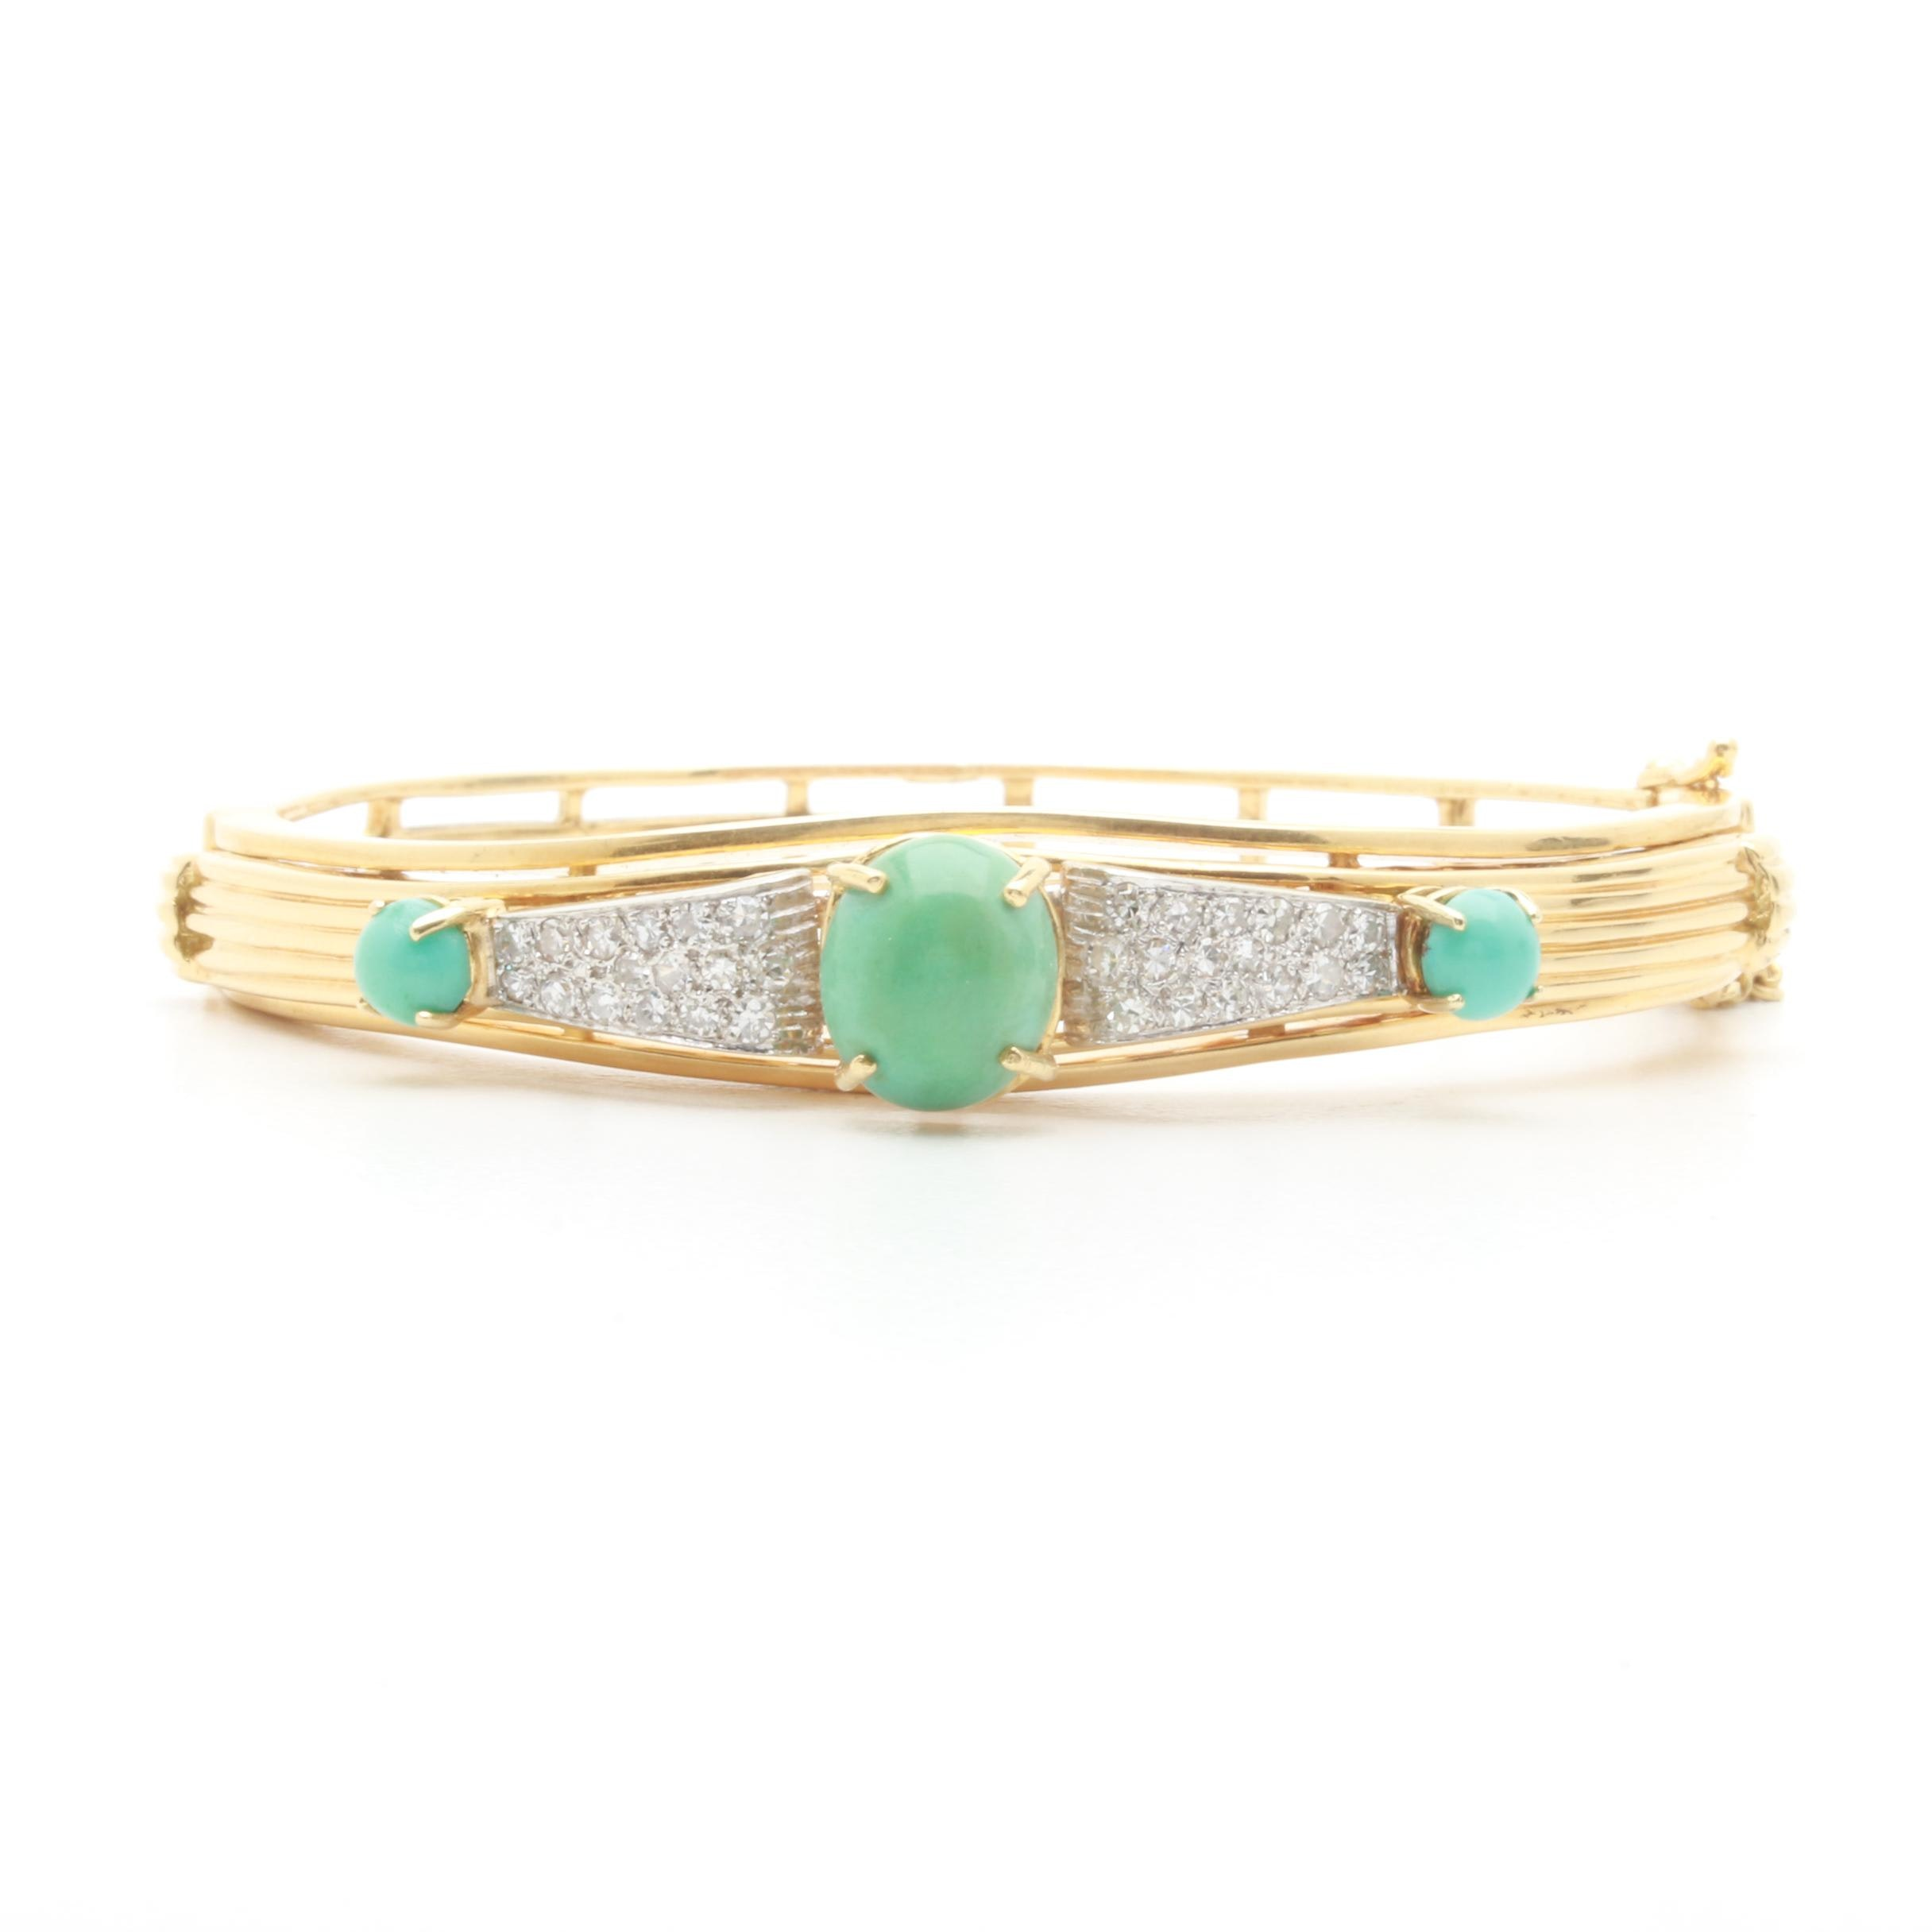 18K Yellow Gold Turquoise and Diamond Bracelet With 14K White Gold Accents